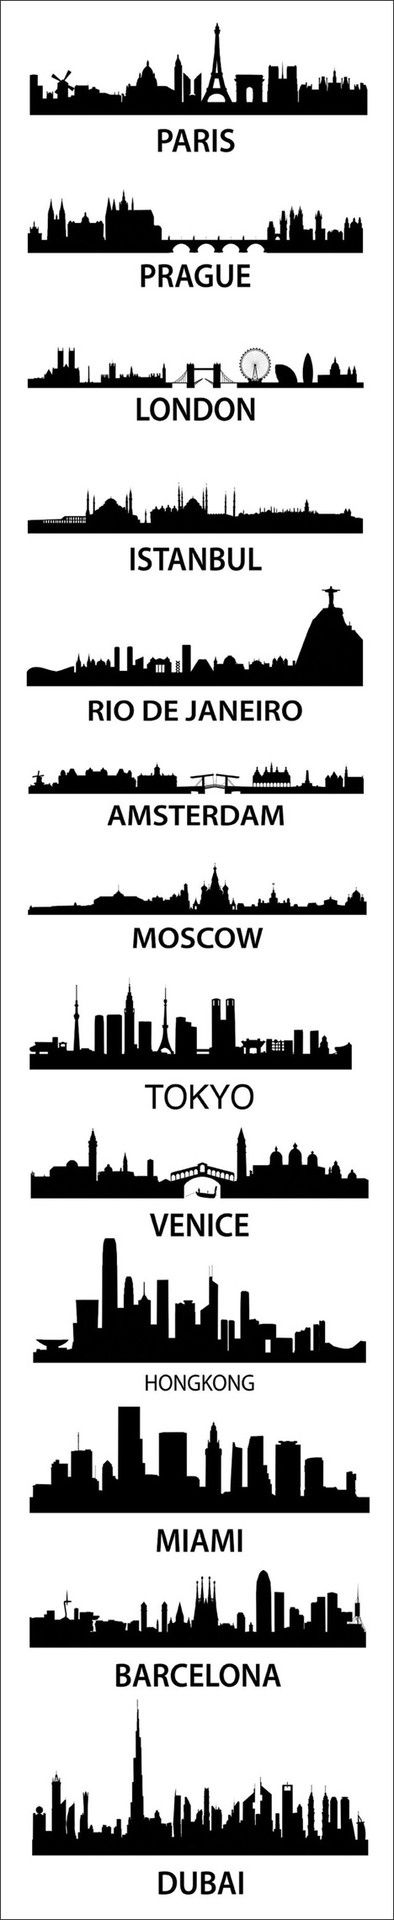 Take pictures of these places and make my own poster